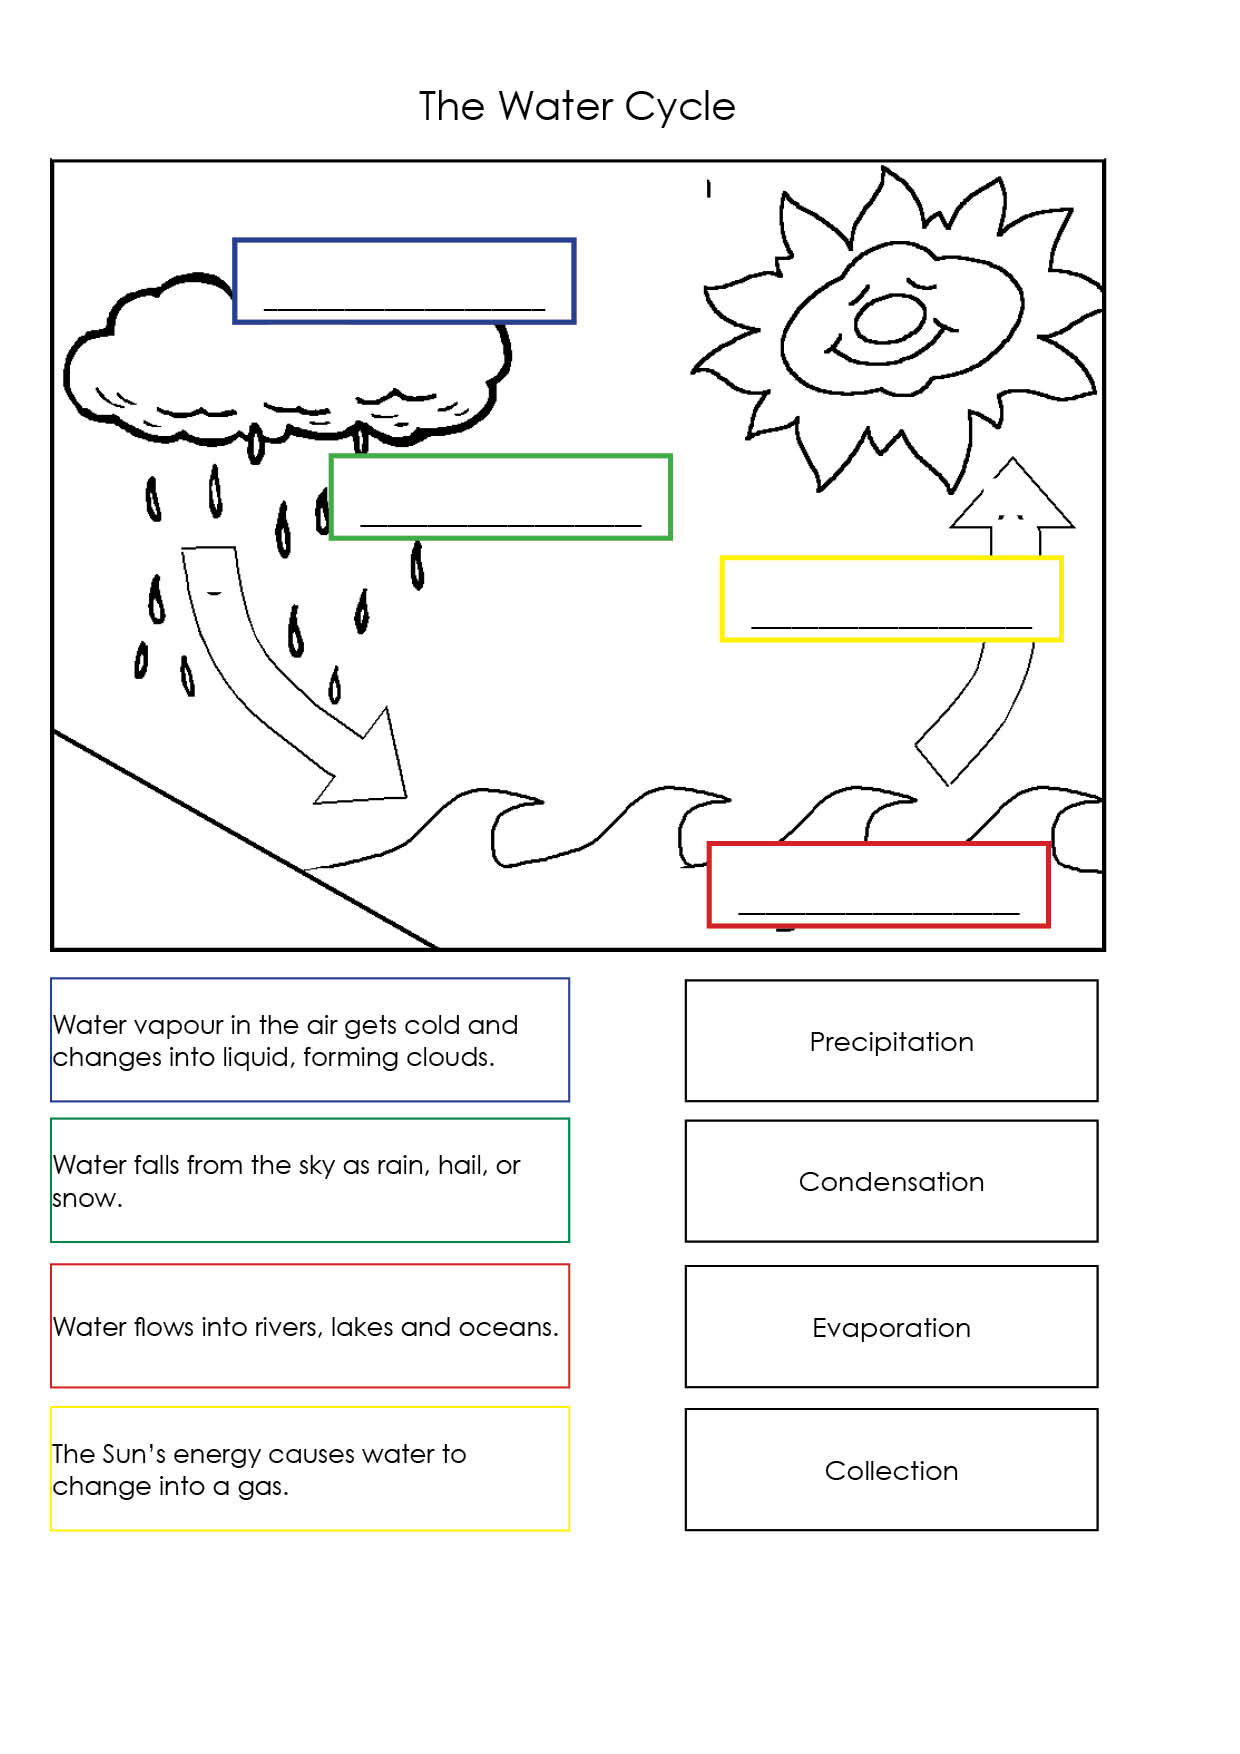 Water cycle worksheet australian curriculum lessons water cycle worksheet ccuart Gallery